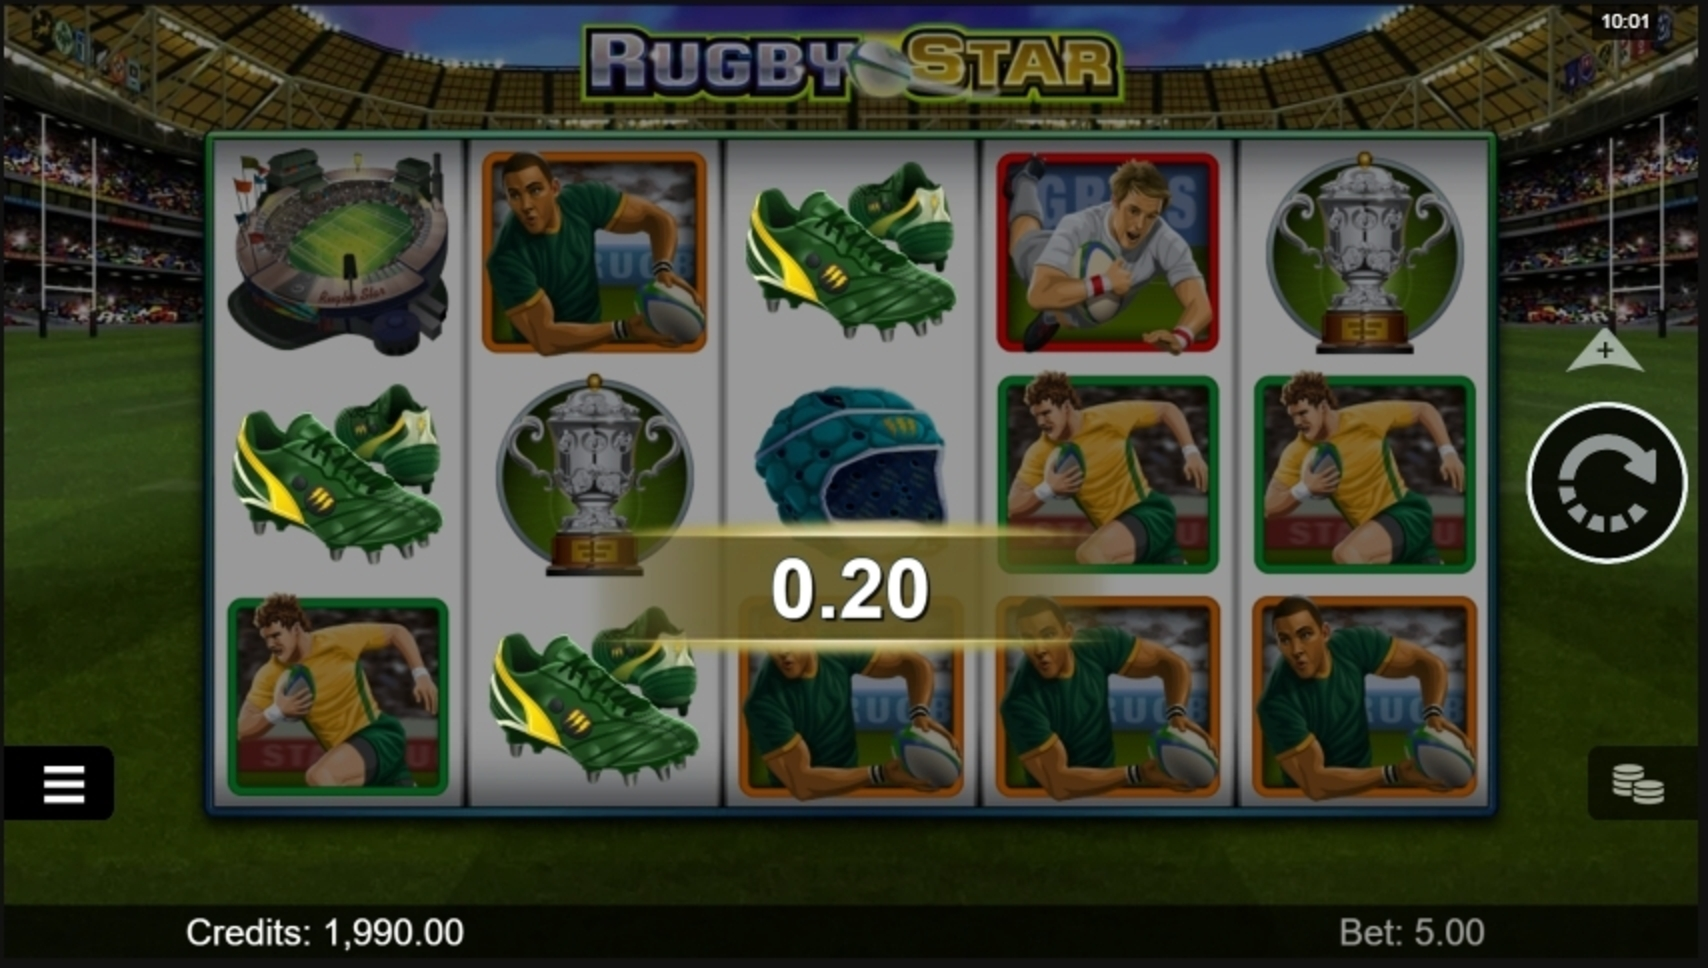 Win Money in Rugby Star Free Slot Game by Microgaming